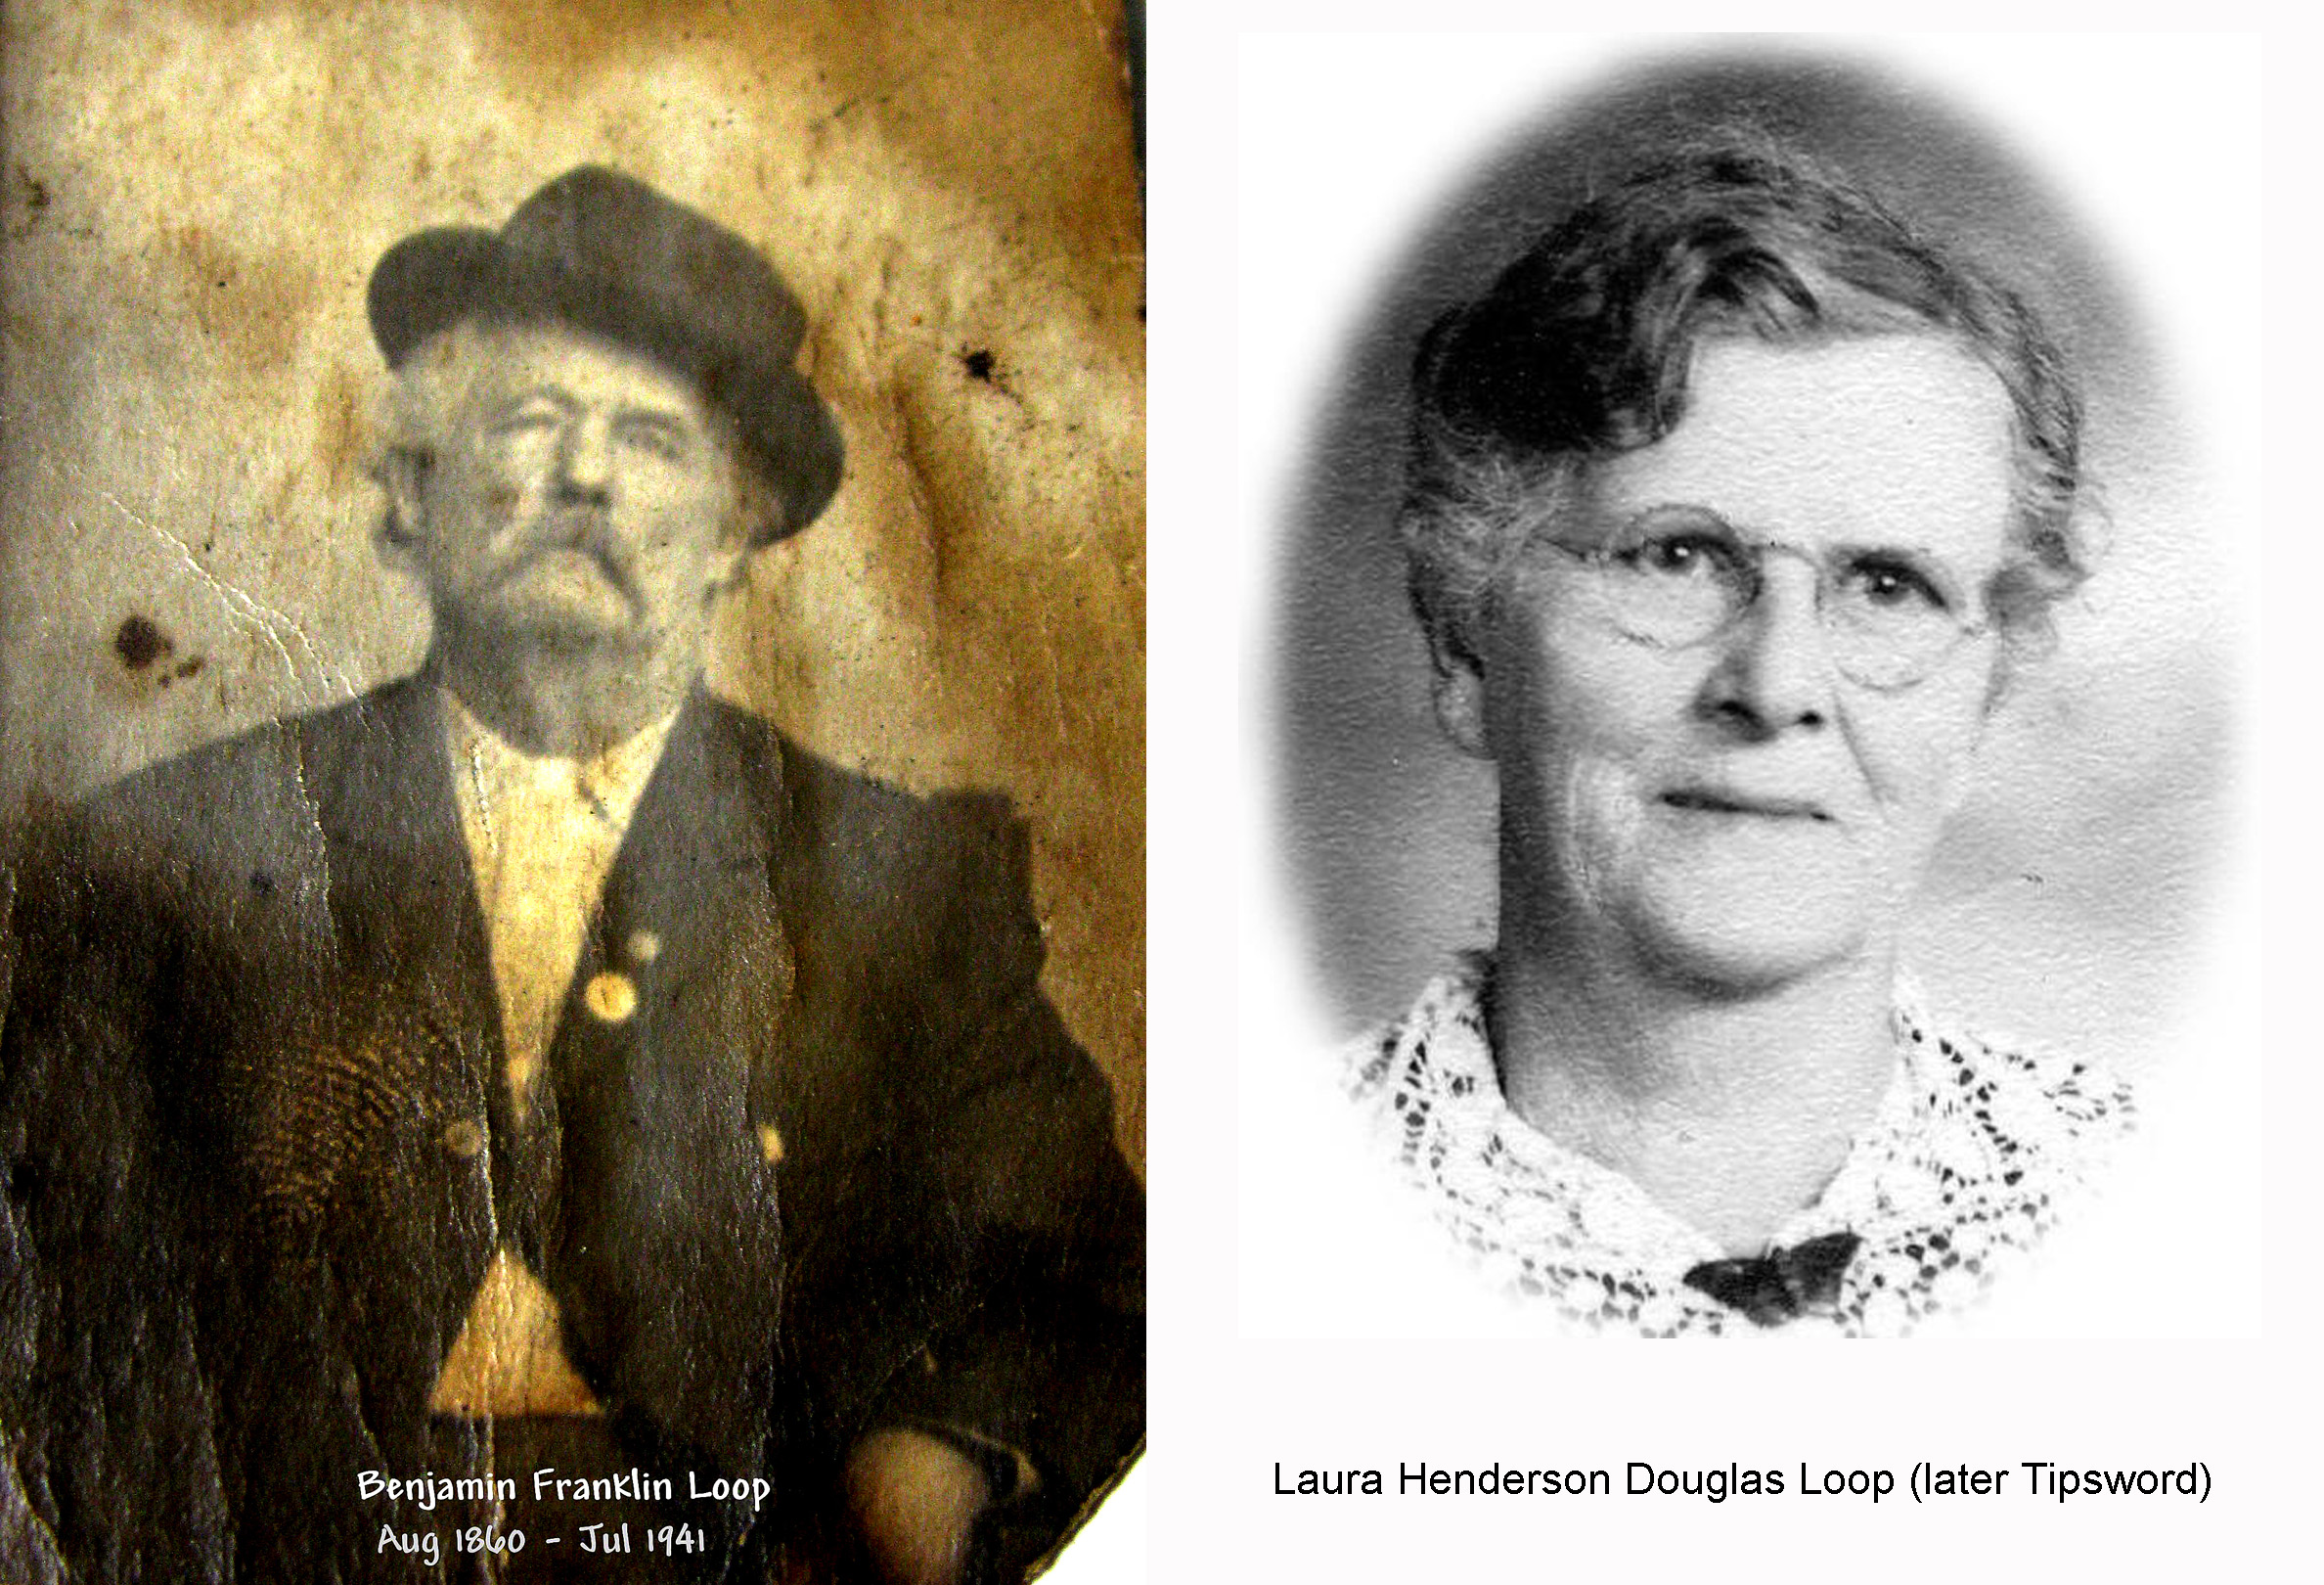 Benjamin Franklin Loop and Laura Henderson Douglas